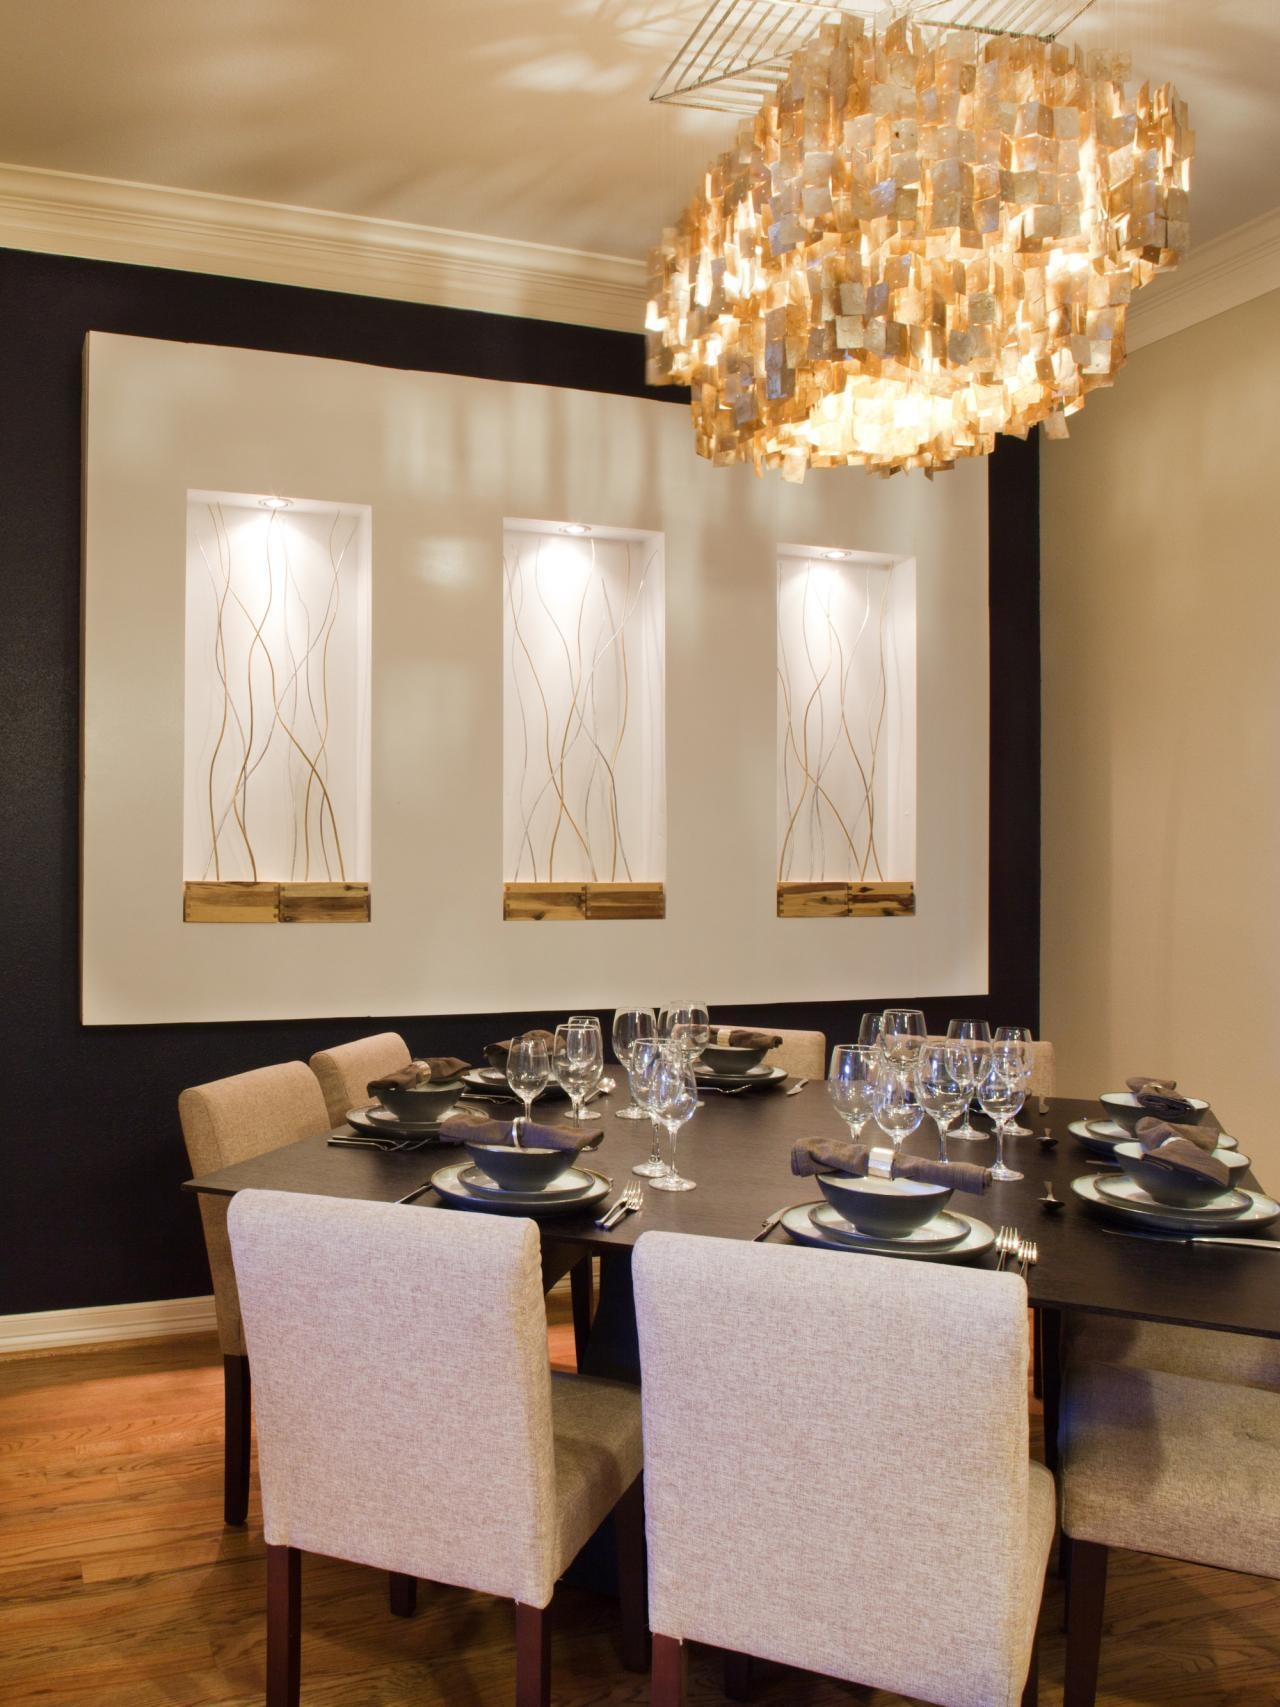 Modern Wall Art For Dining Room Alliancemvcom – Provisions Dining Within Dining Wall Art (Image 19 of 20)